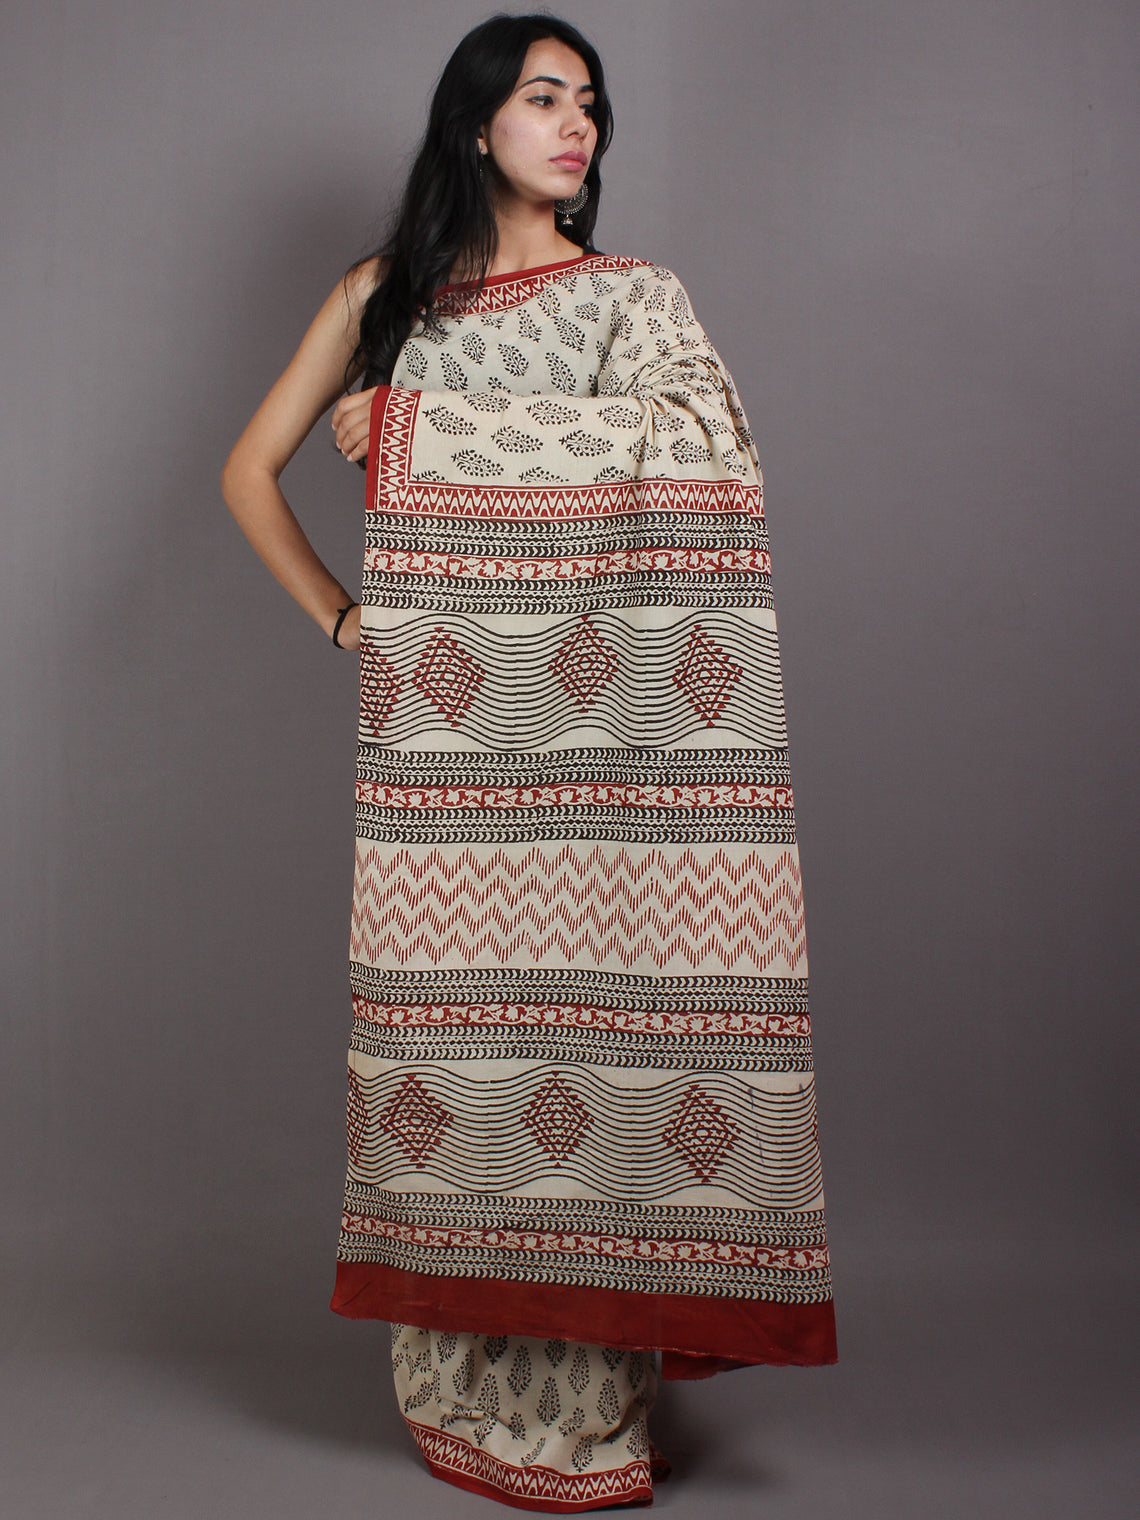 Beige Black Maroon Cotton Hand Block Printed Saree in Natural Colors - S03170568